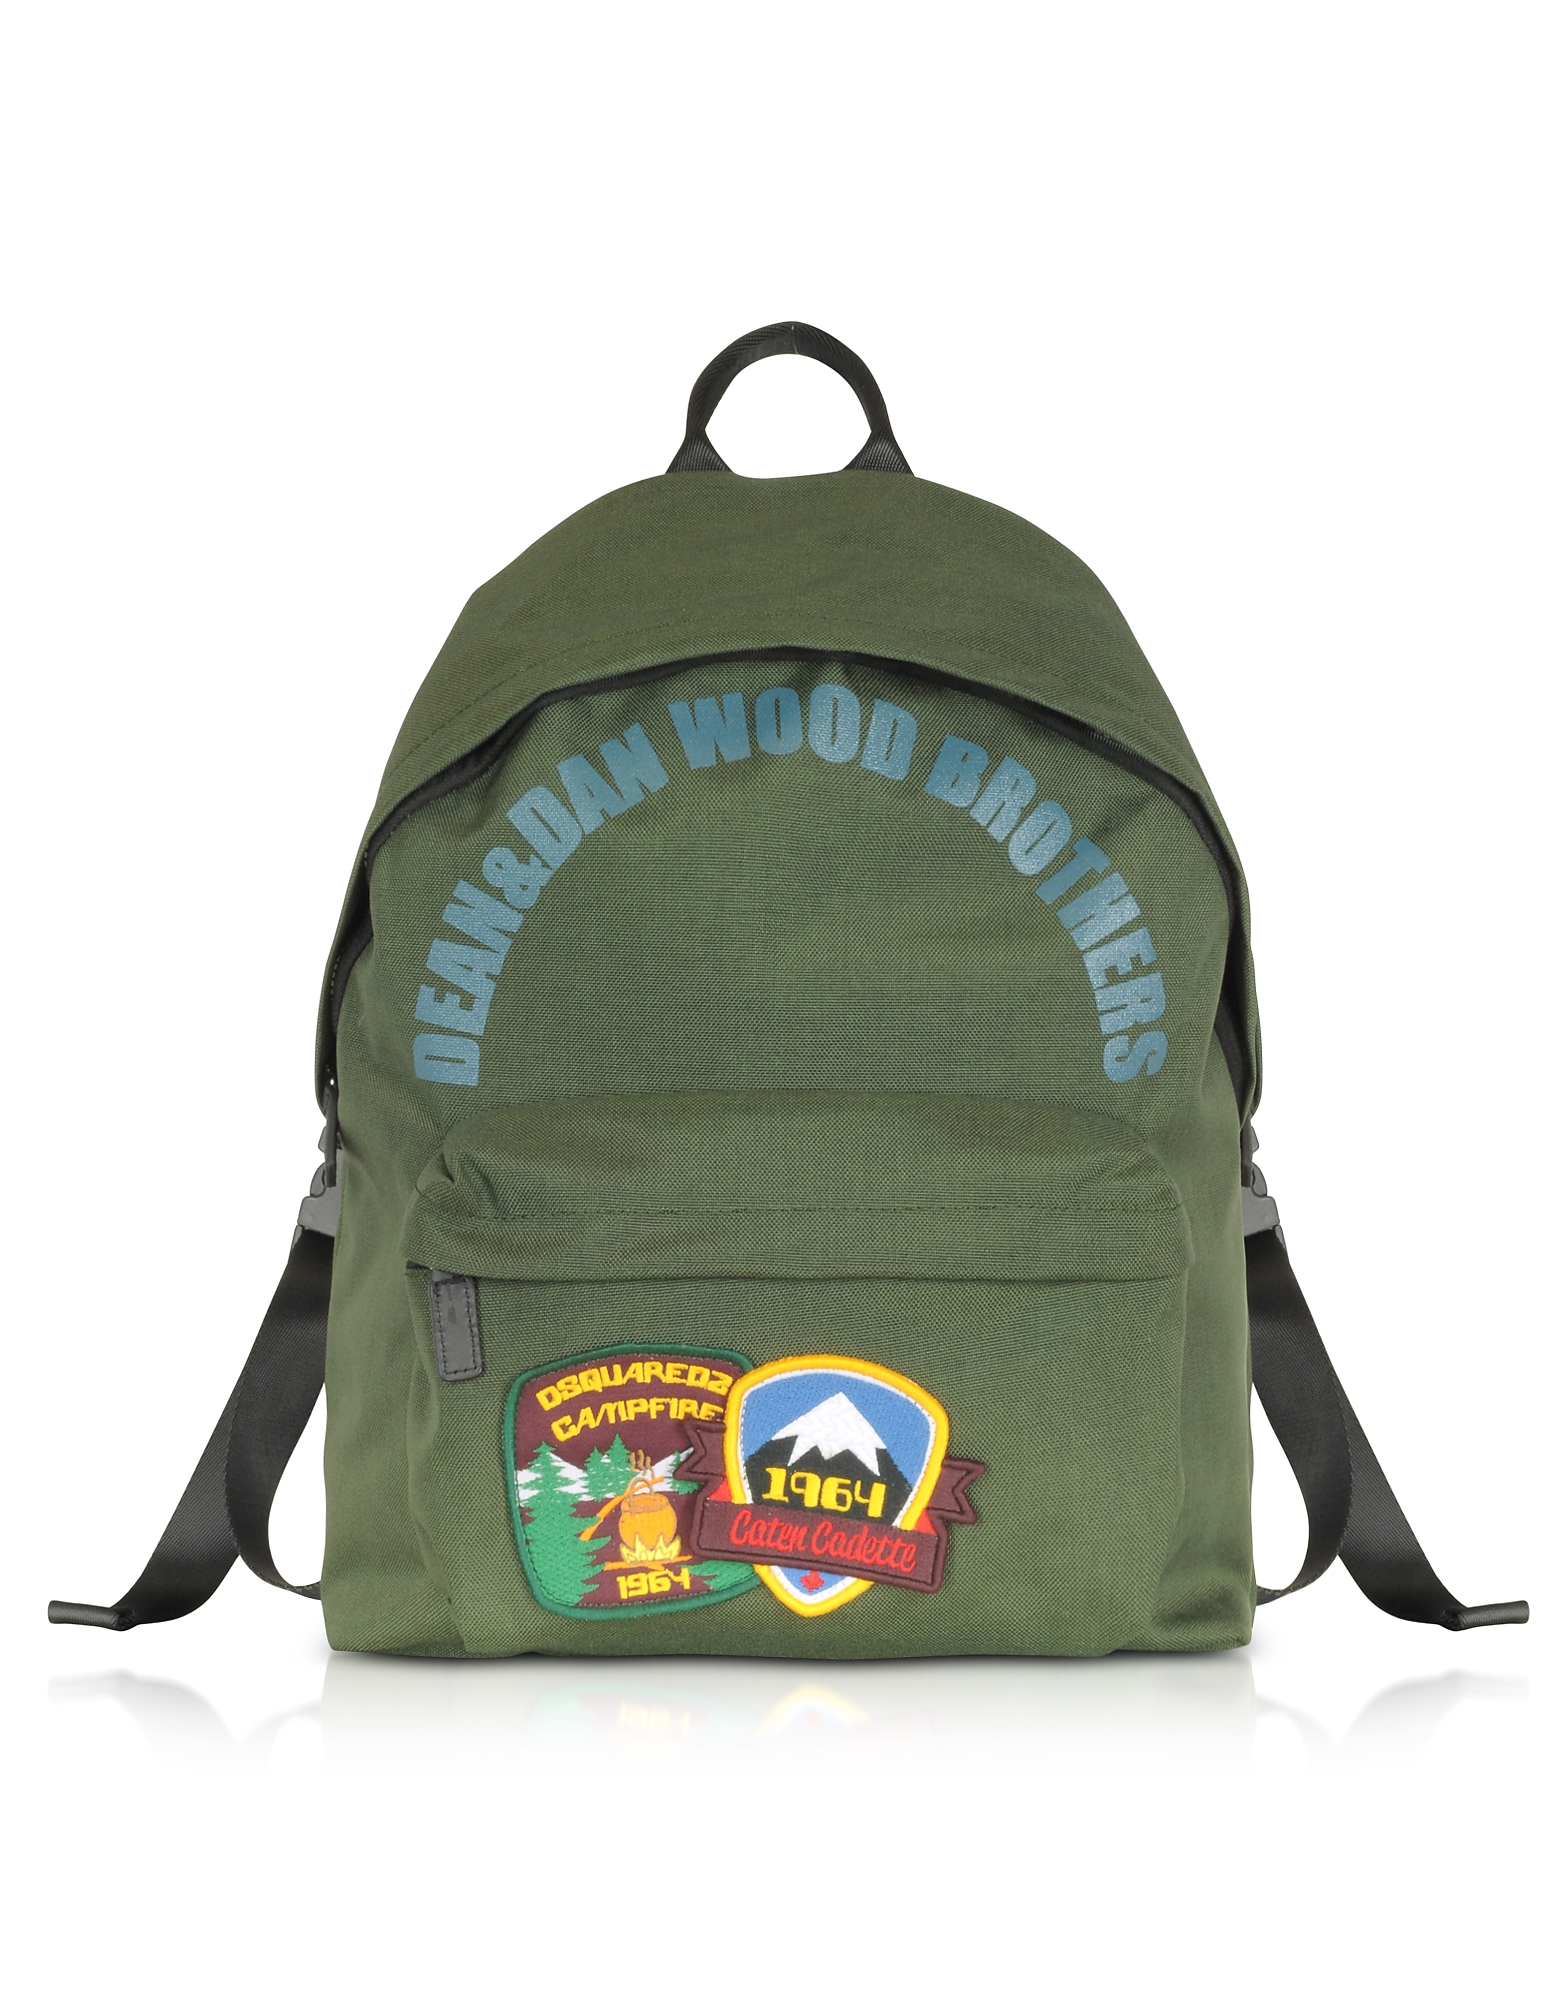 DSquared2 Backpacks, Military Green Nylon Medium Backpack w/Patches